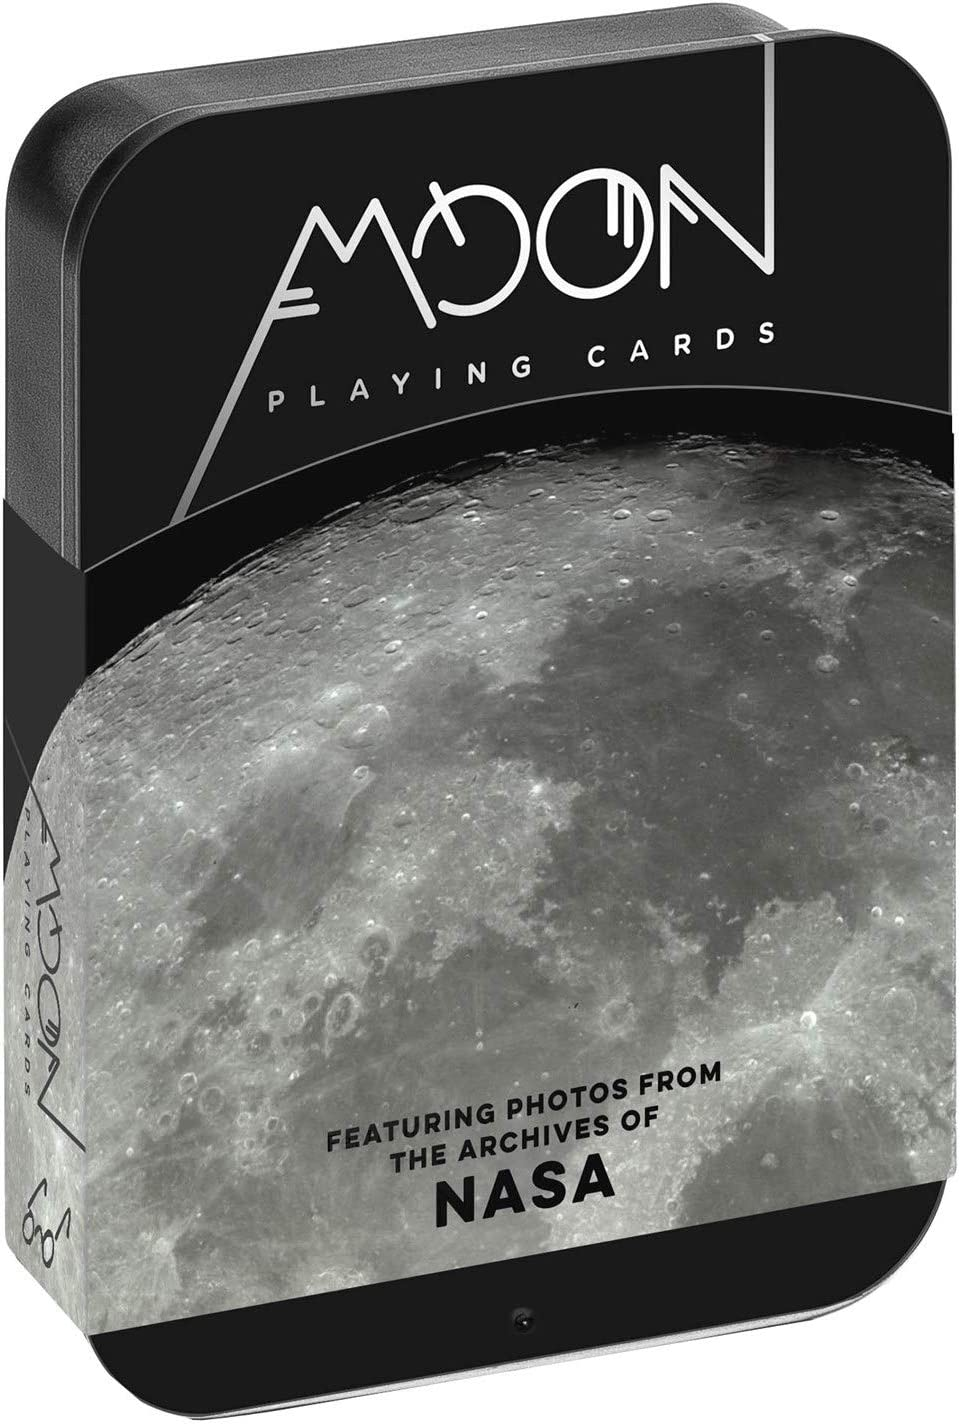 1452176841 Moon Playing Cards: Featuring Photos from The Archives of NASA (Premium Playing Cards, Lunar Playing Cards for Kids) 71EQuNYr2hL